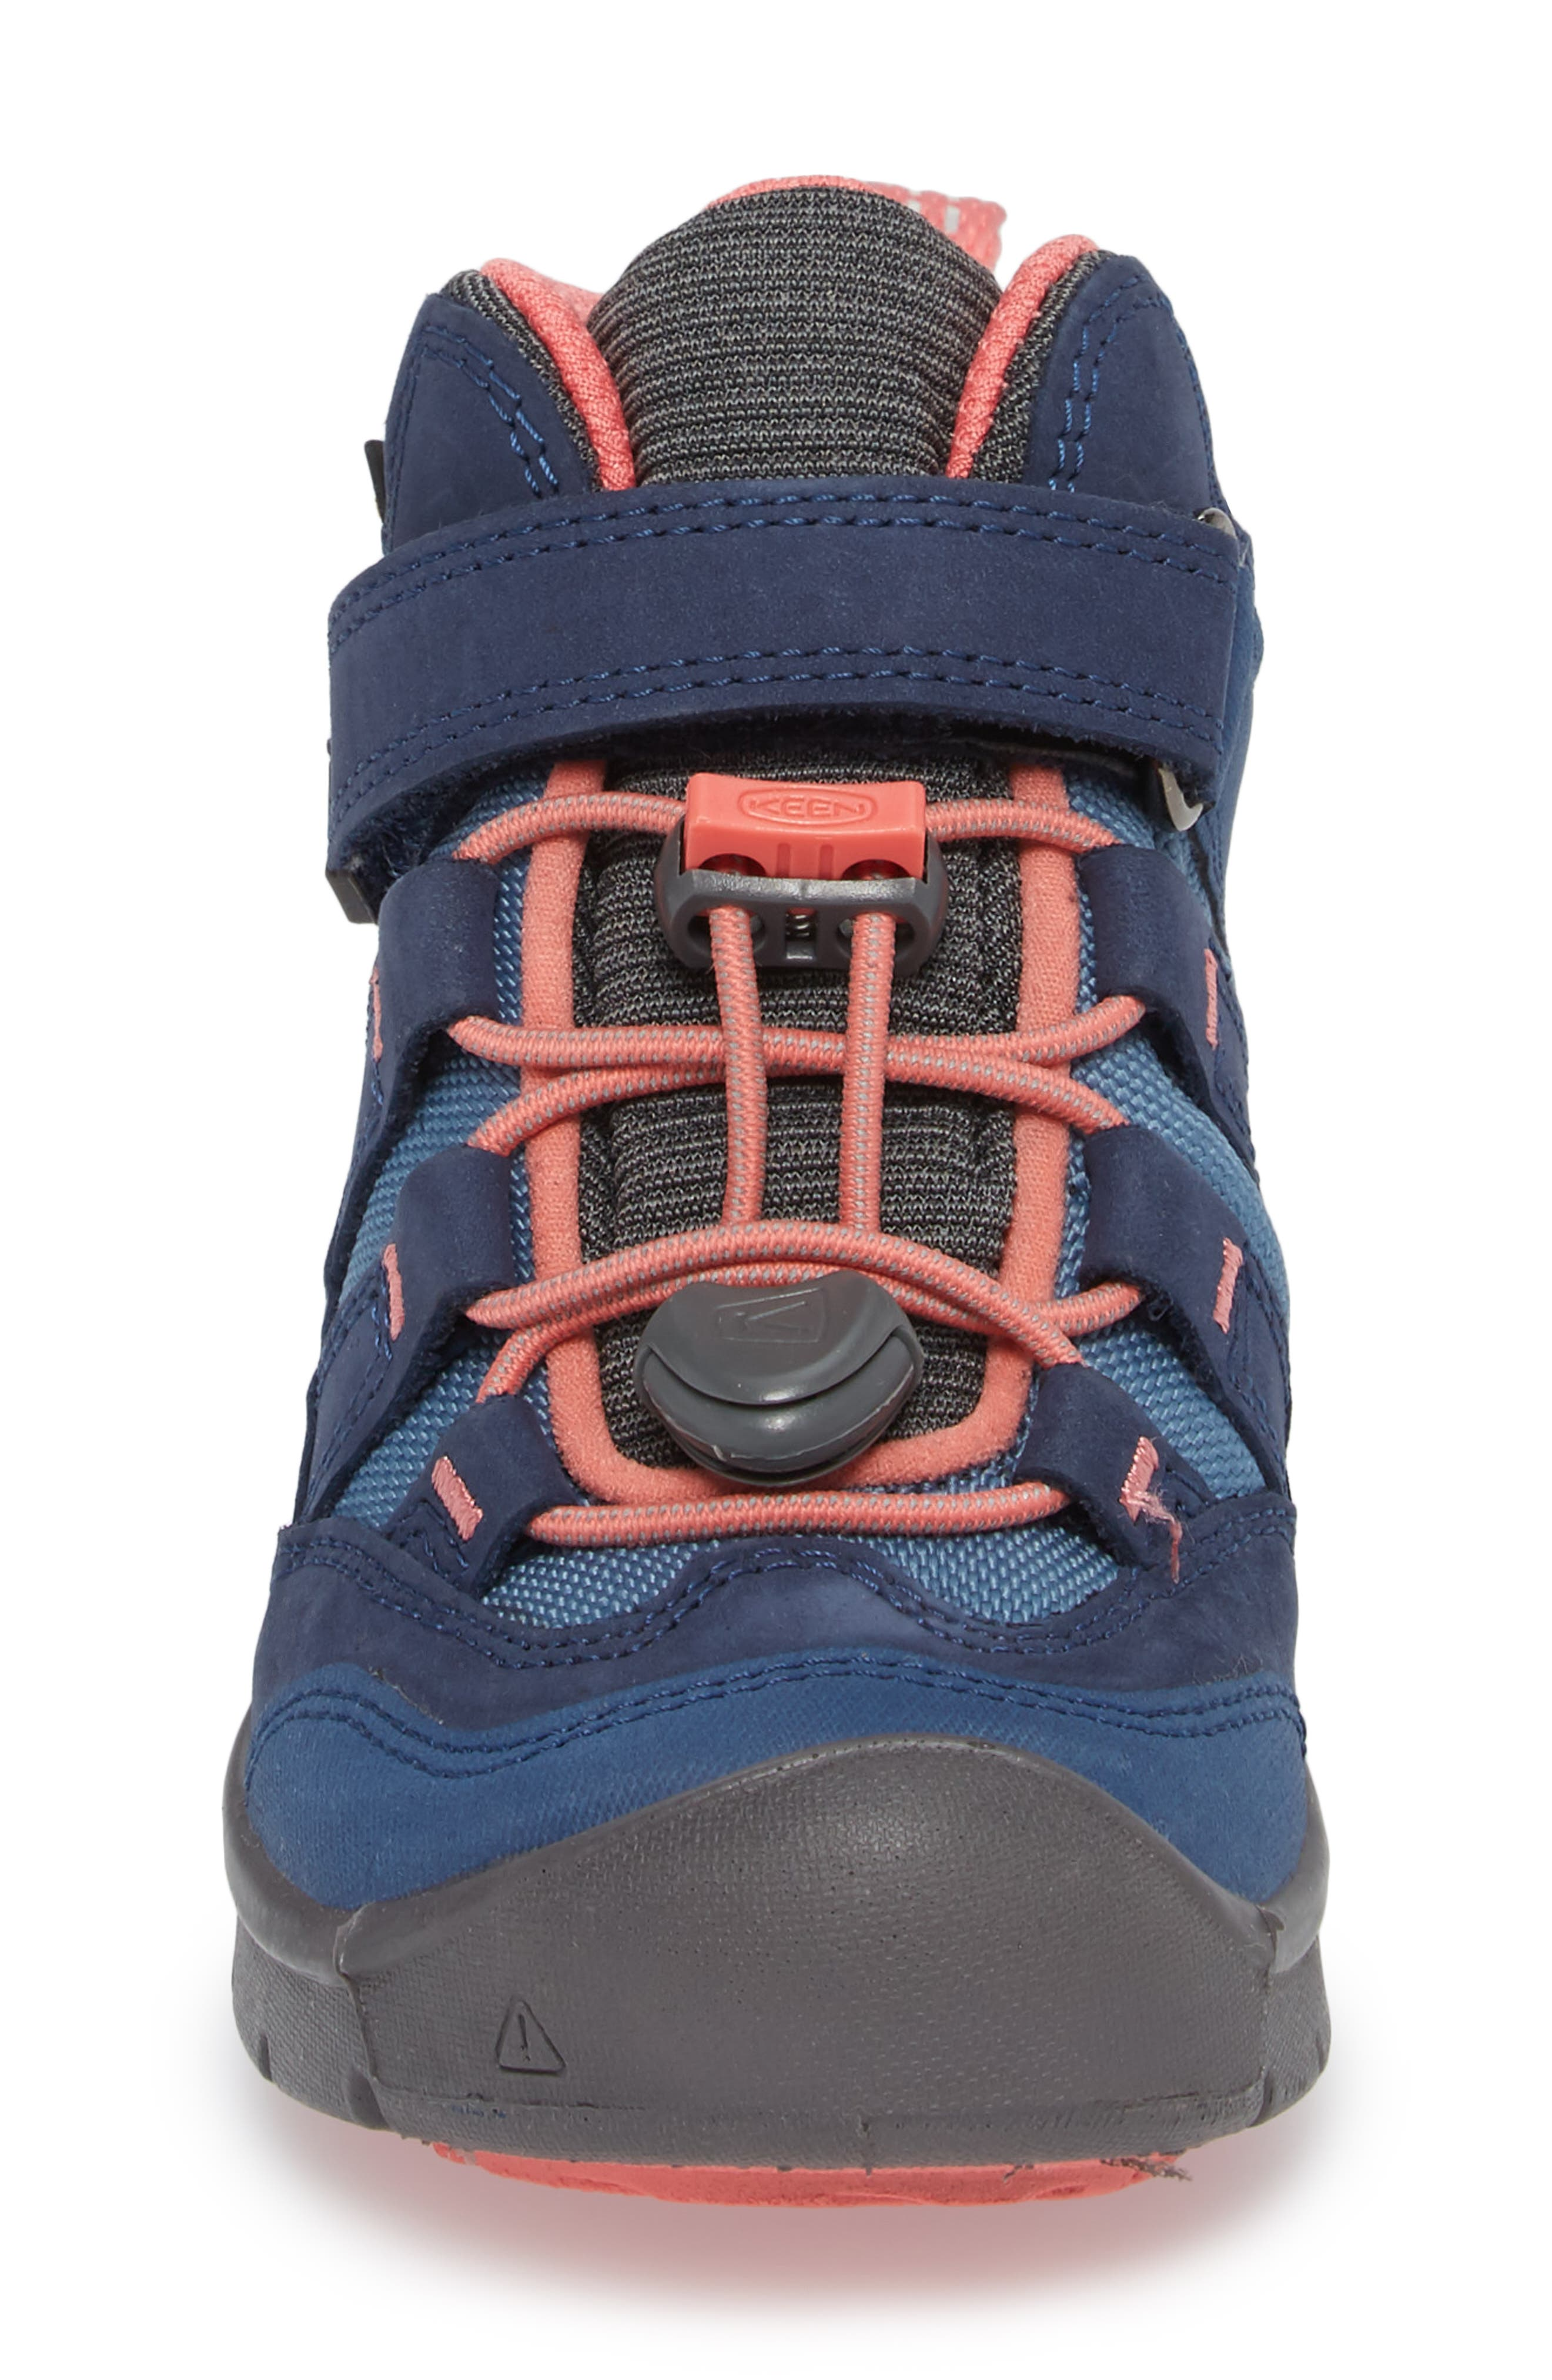 Hikeport Strap Waterproof Mid Boot,                             Alternate thumbnail 4, color,                             Dress Blues/ Sugar Coral